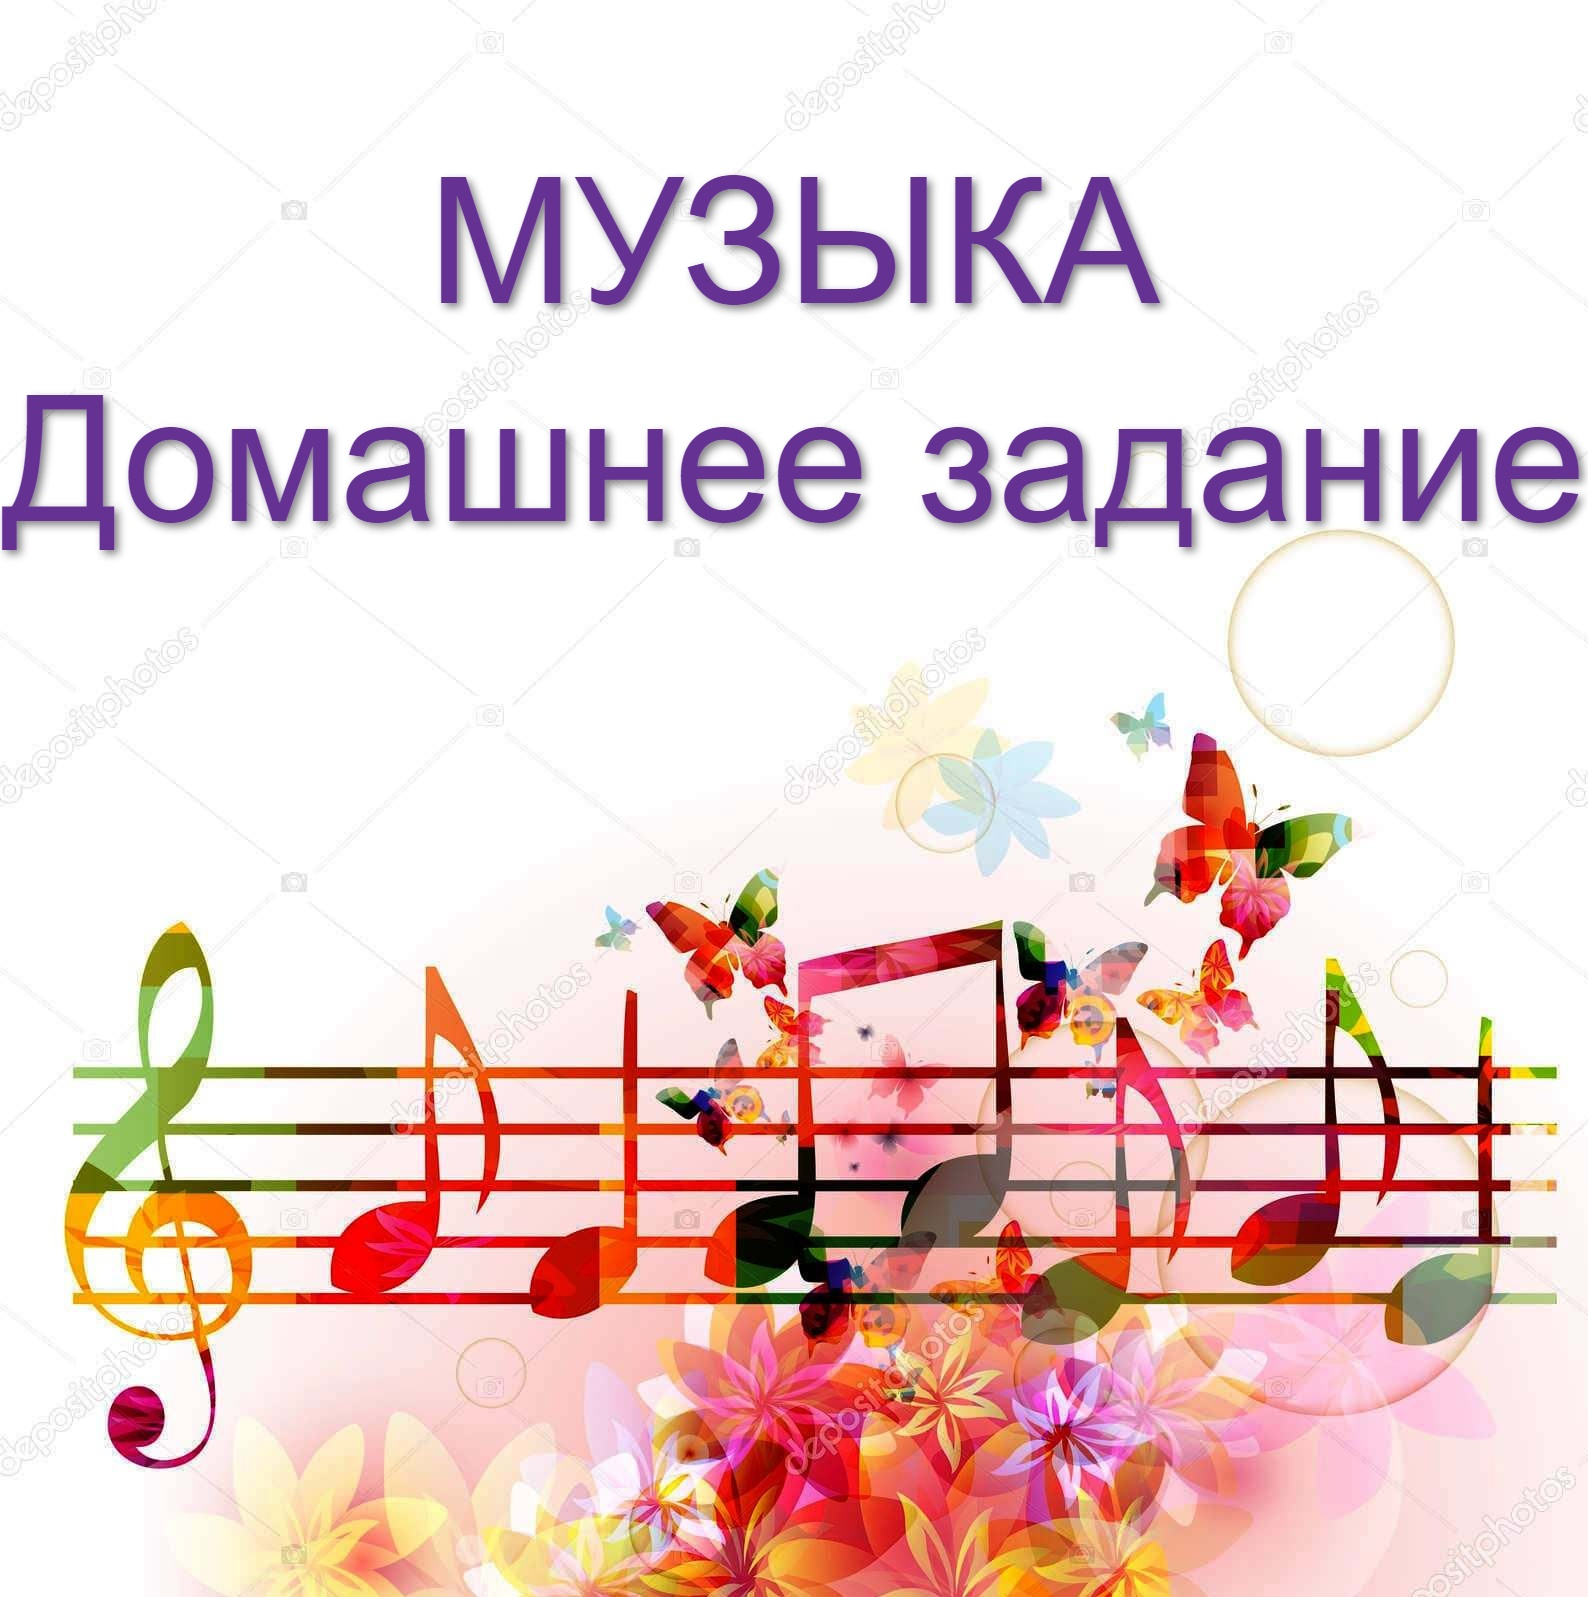 depositphotos_278033220-stock-illustration-music-background-colorful-clef-music (1).jpg